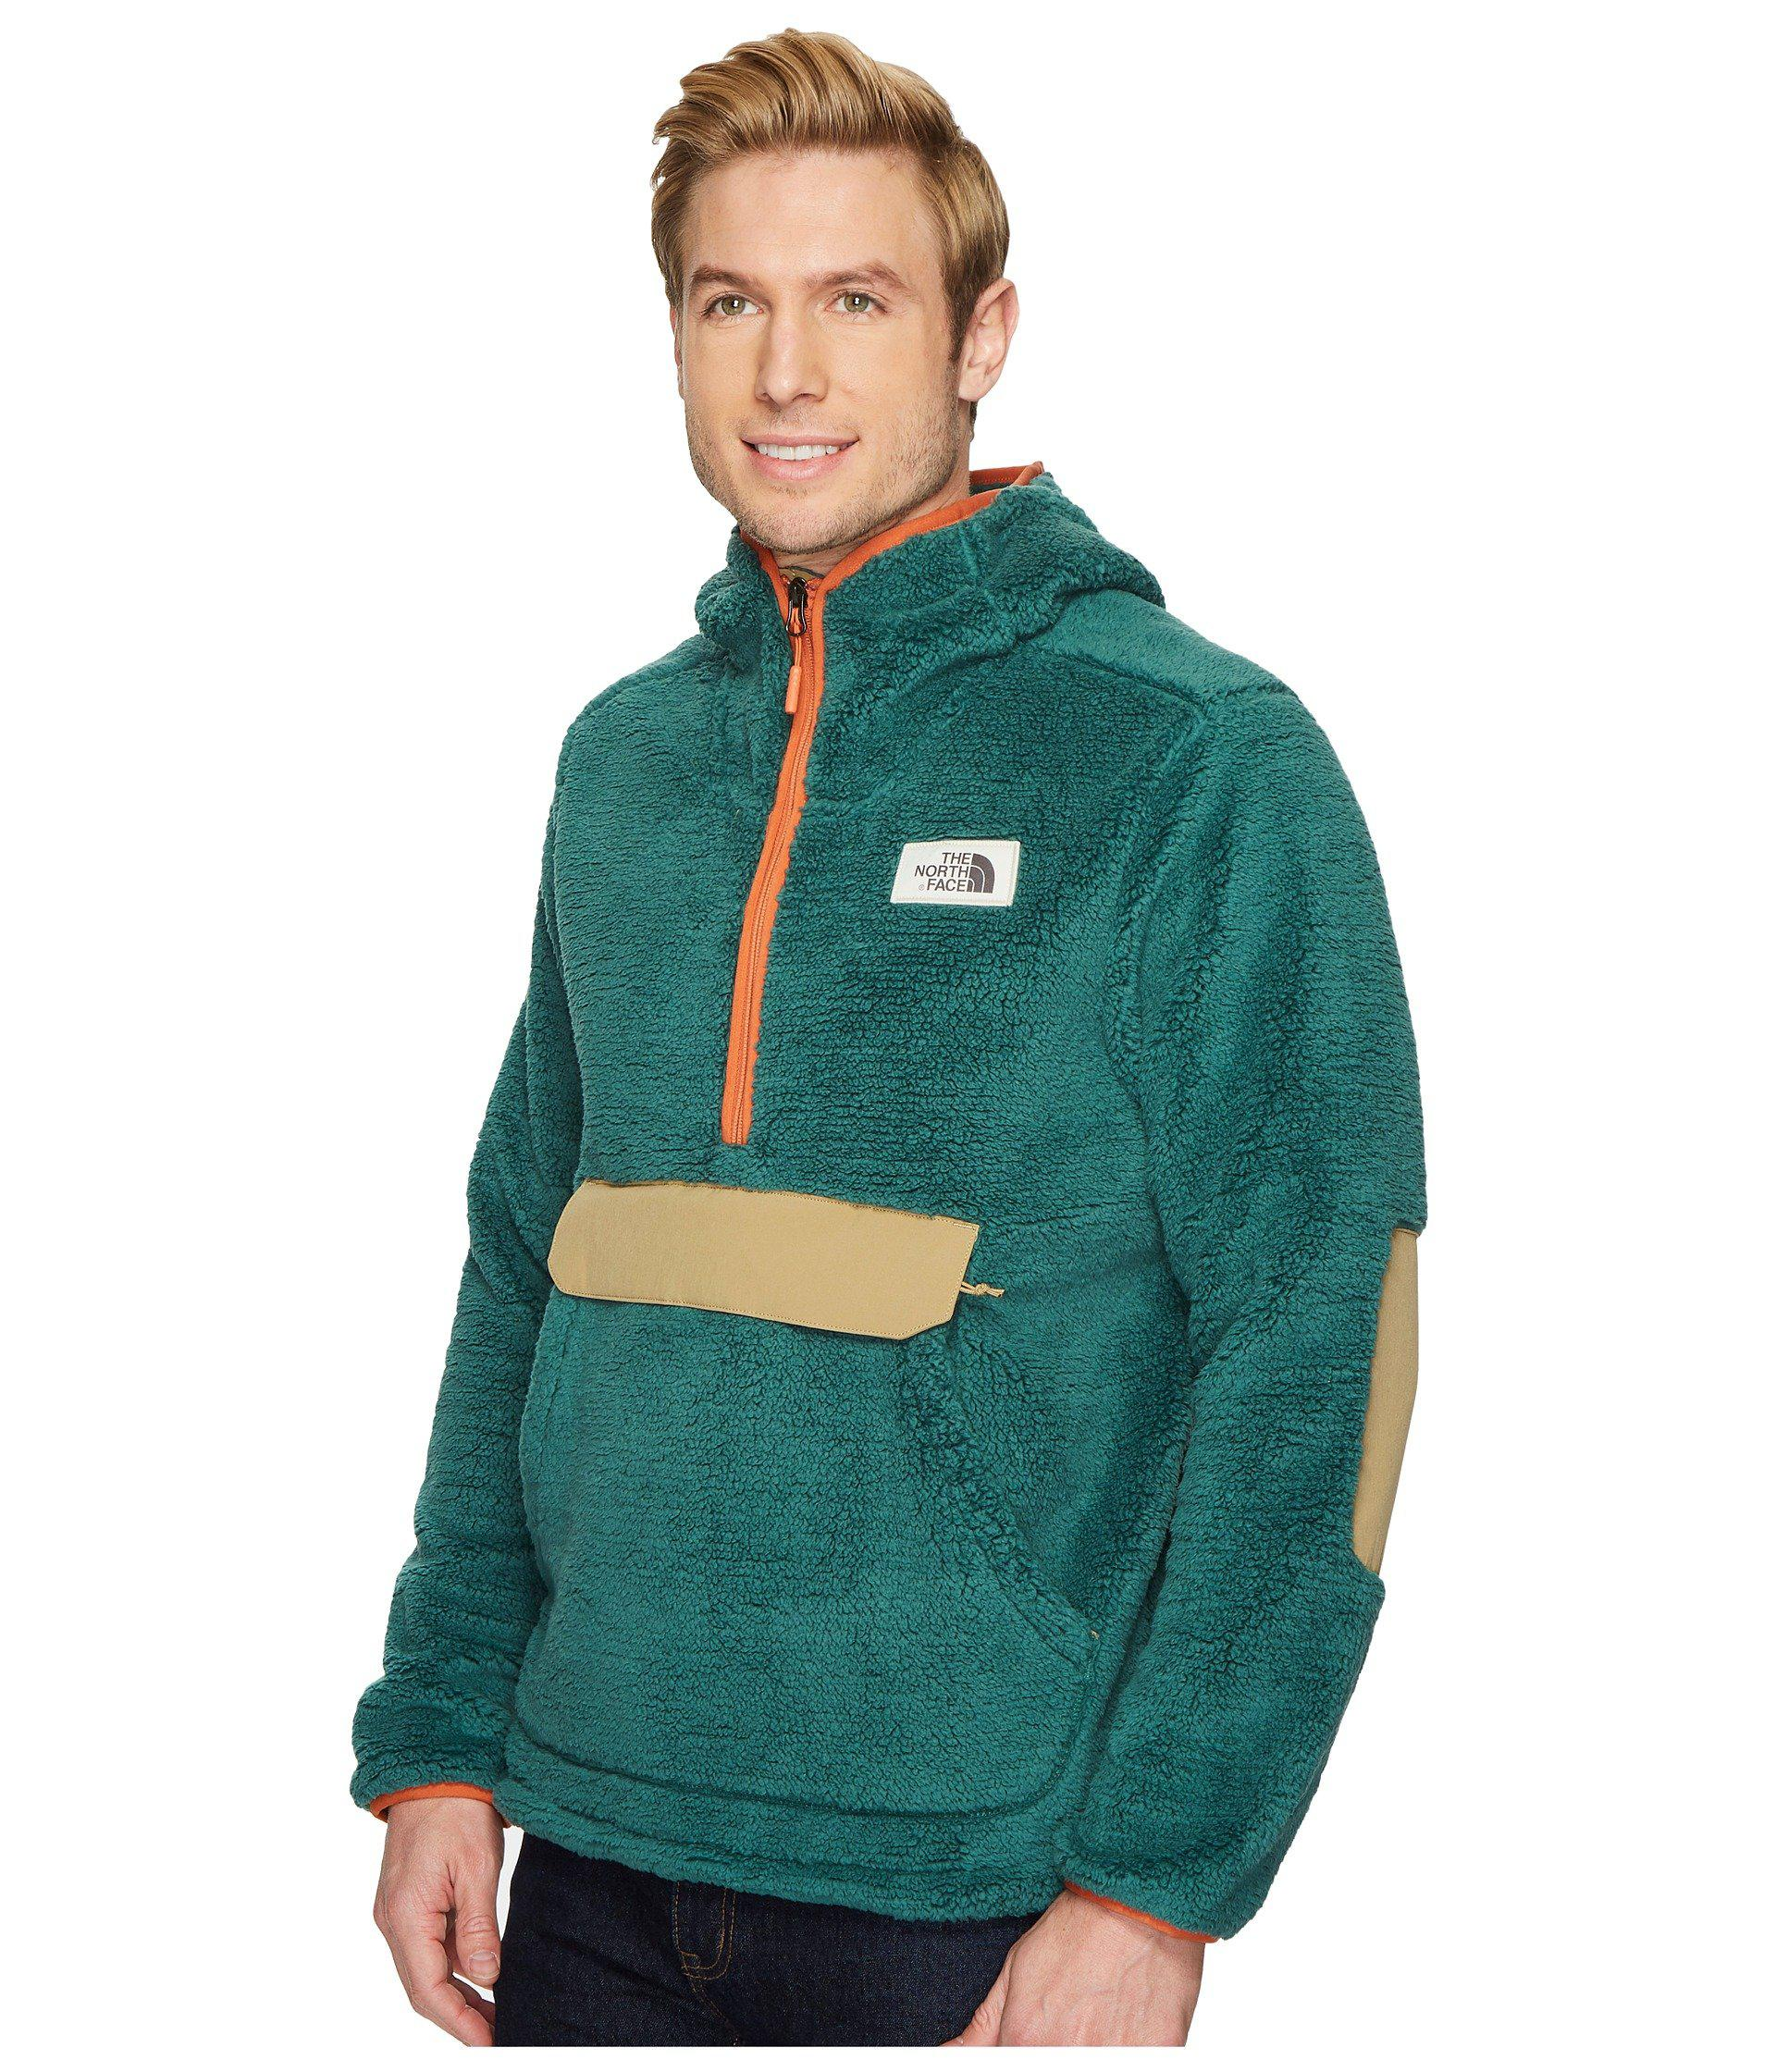 803a65f6885e Lyst - The North Face Campshire Pullover Hoodie in Green for Men - Save 30%